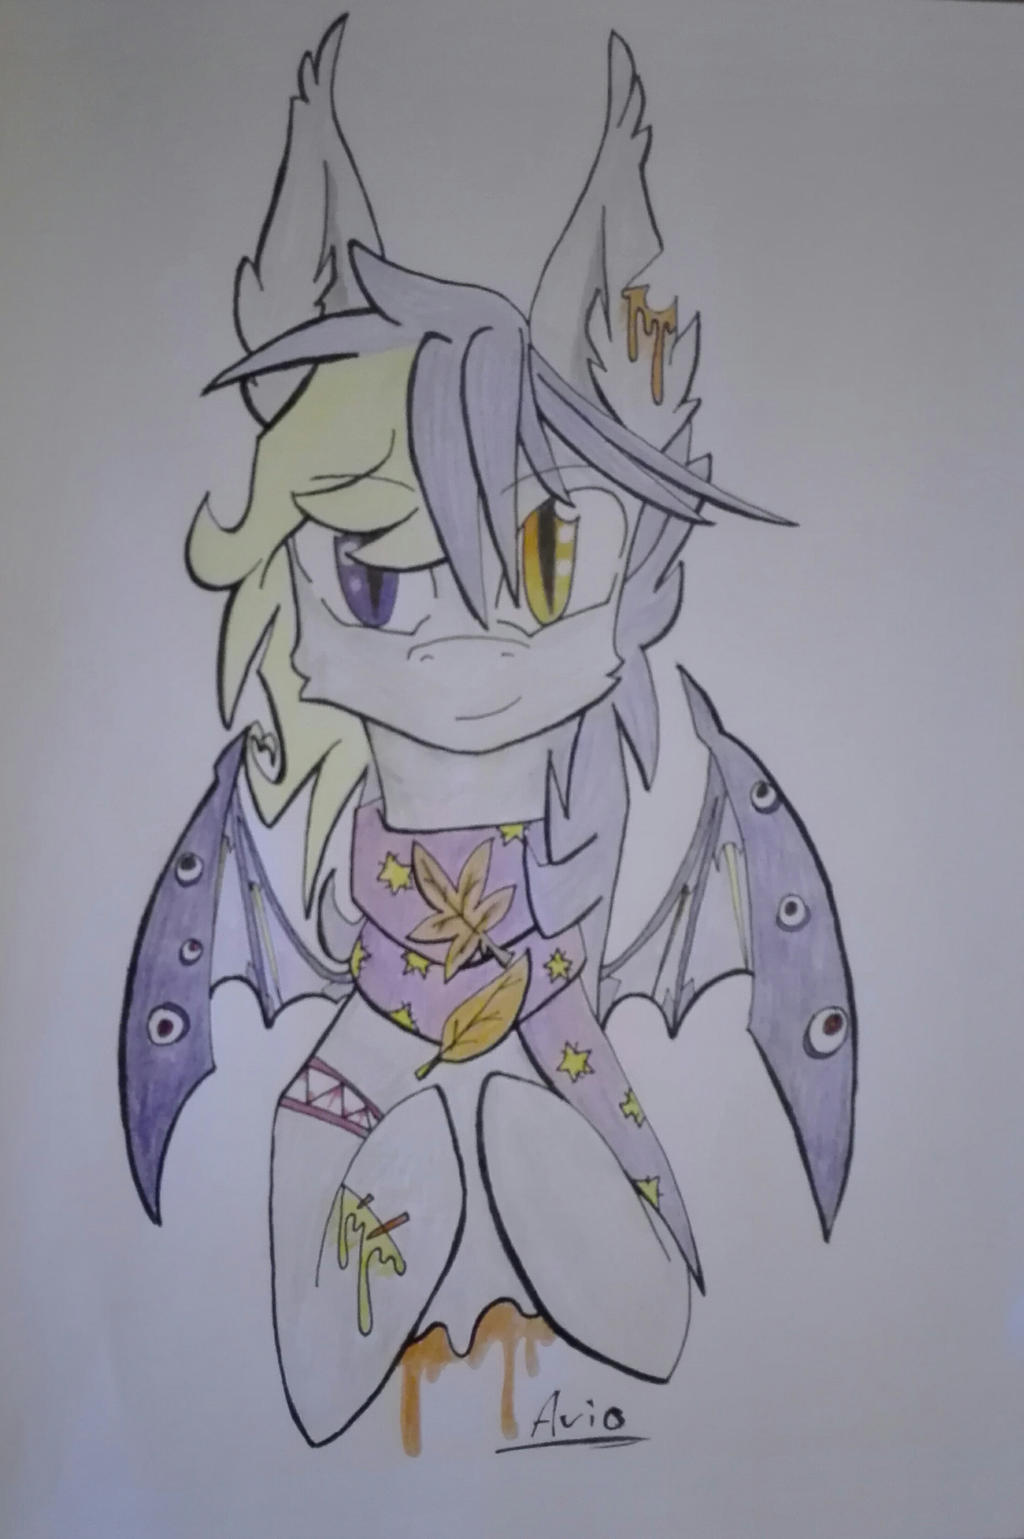 Goretober day 1: Autumn vibes by ArioGrimmRe